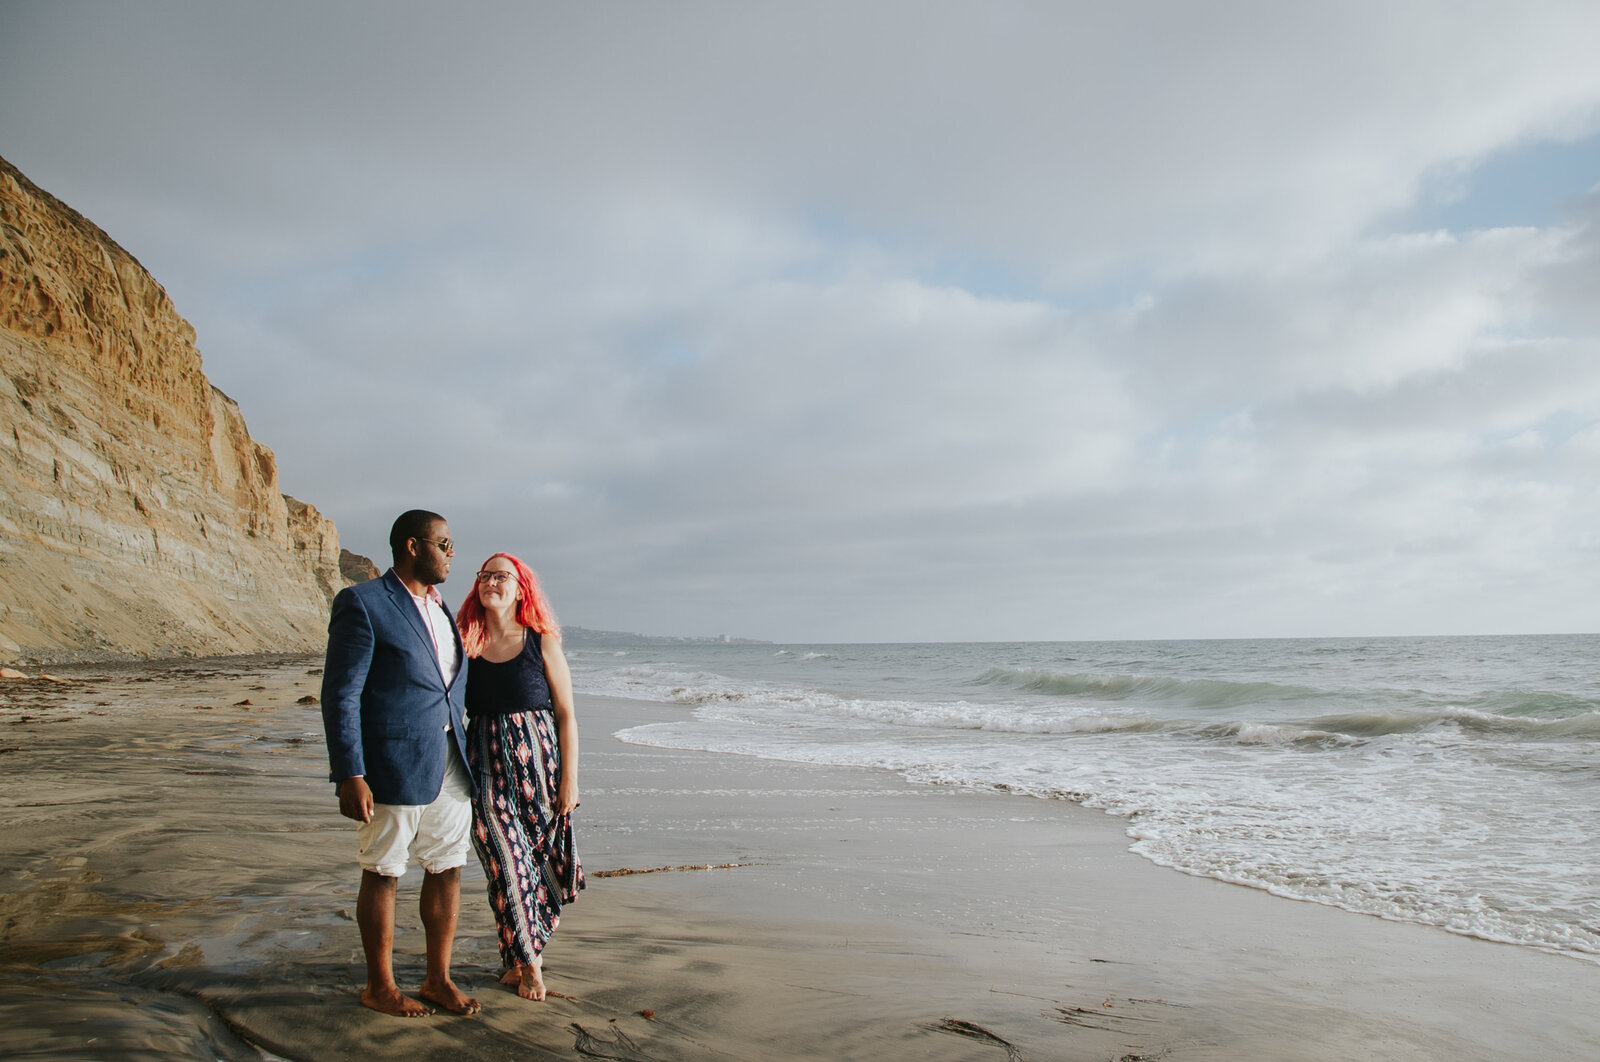 Lindsay-Kreighbaum-wedding-portrait-photographer-california-lifestyle37